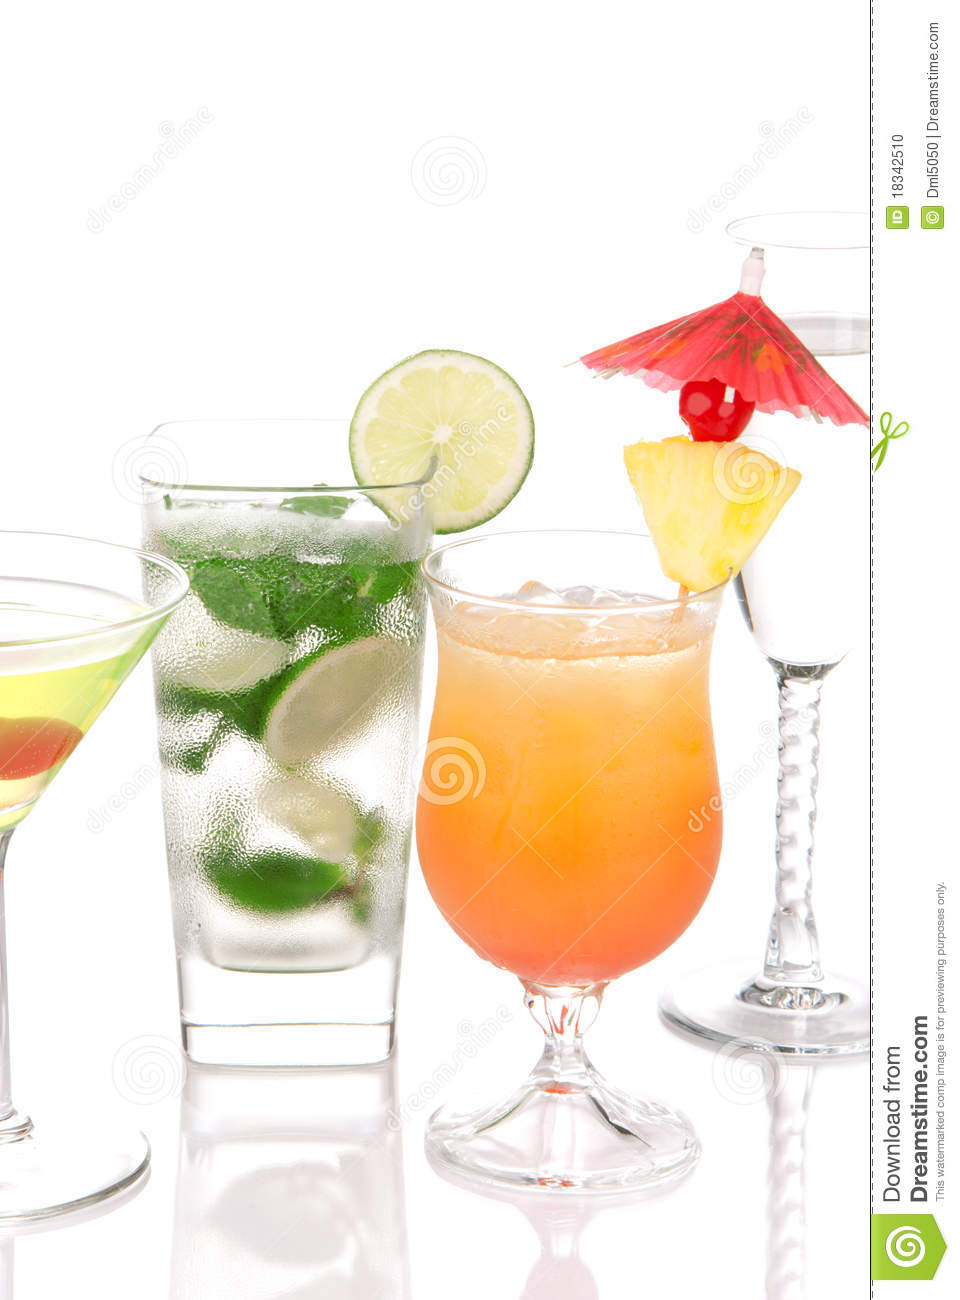 Cocktails Mojito;Martini, Tequila Sunrise Stock Photo - Image ...